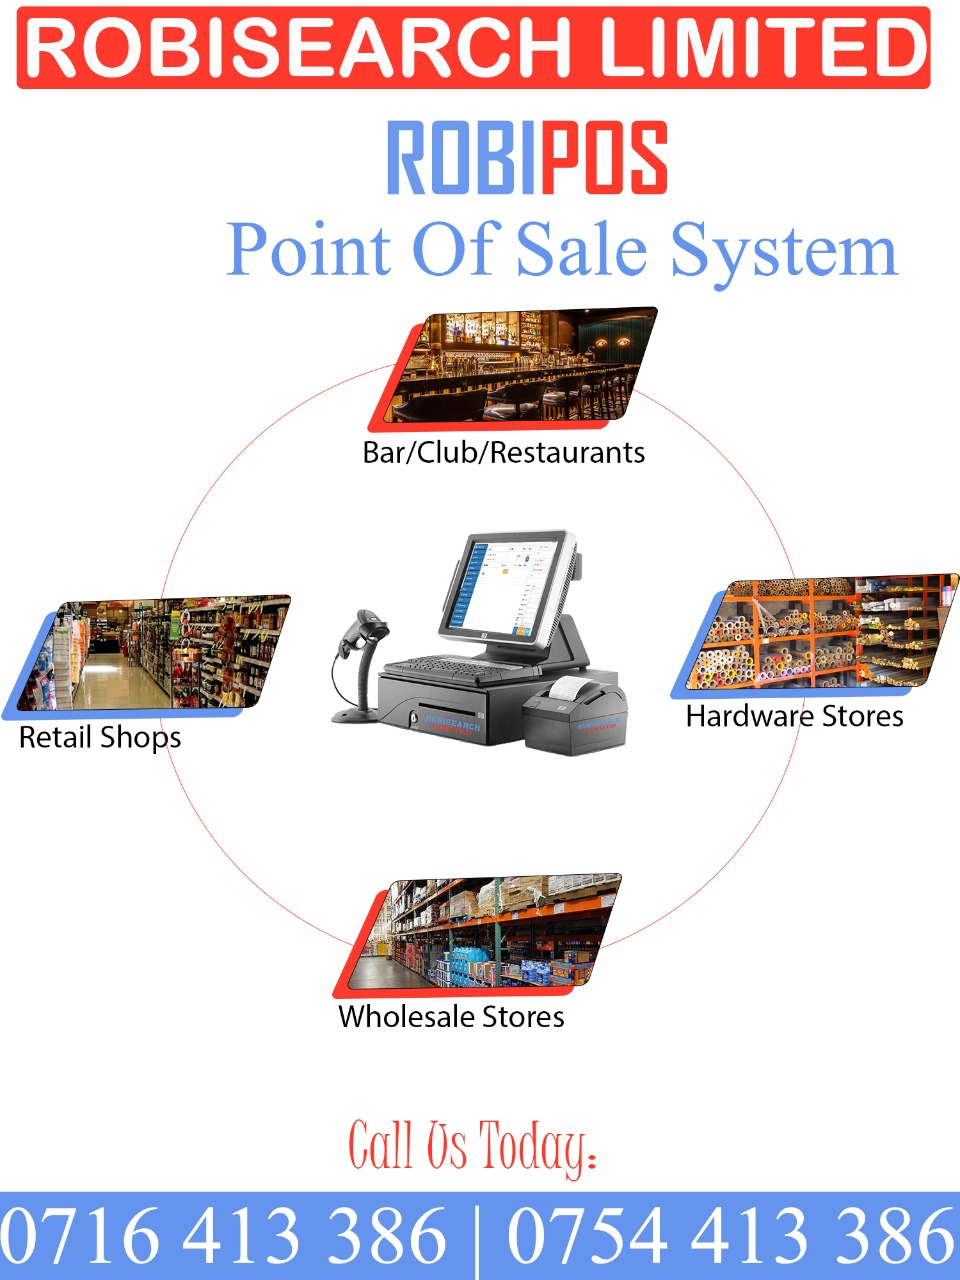 Benefits and advantages of point of sale systems in your business